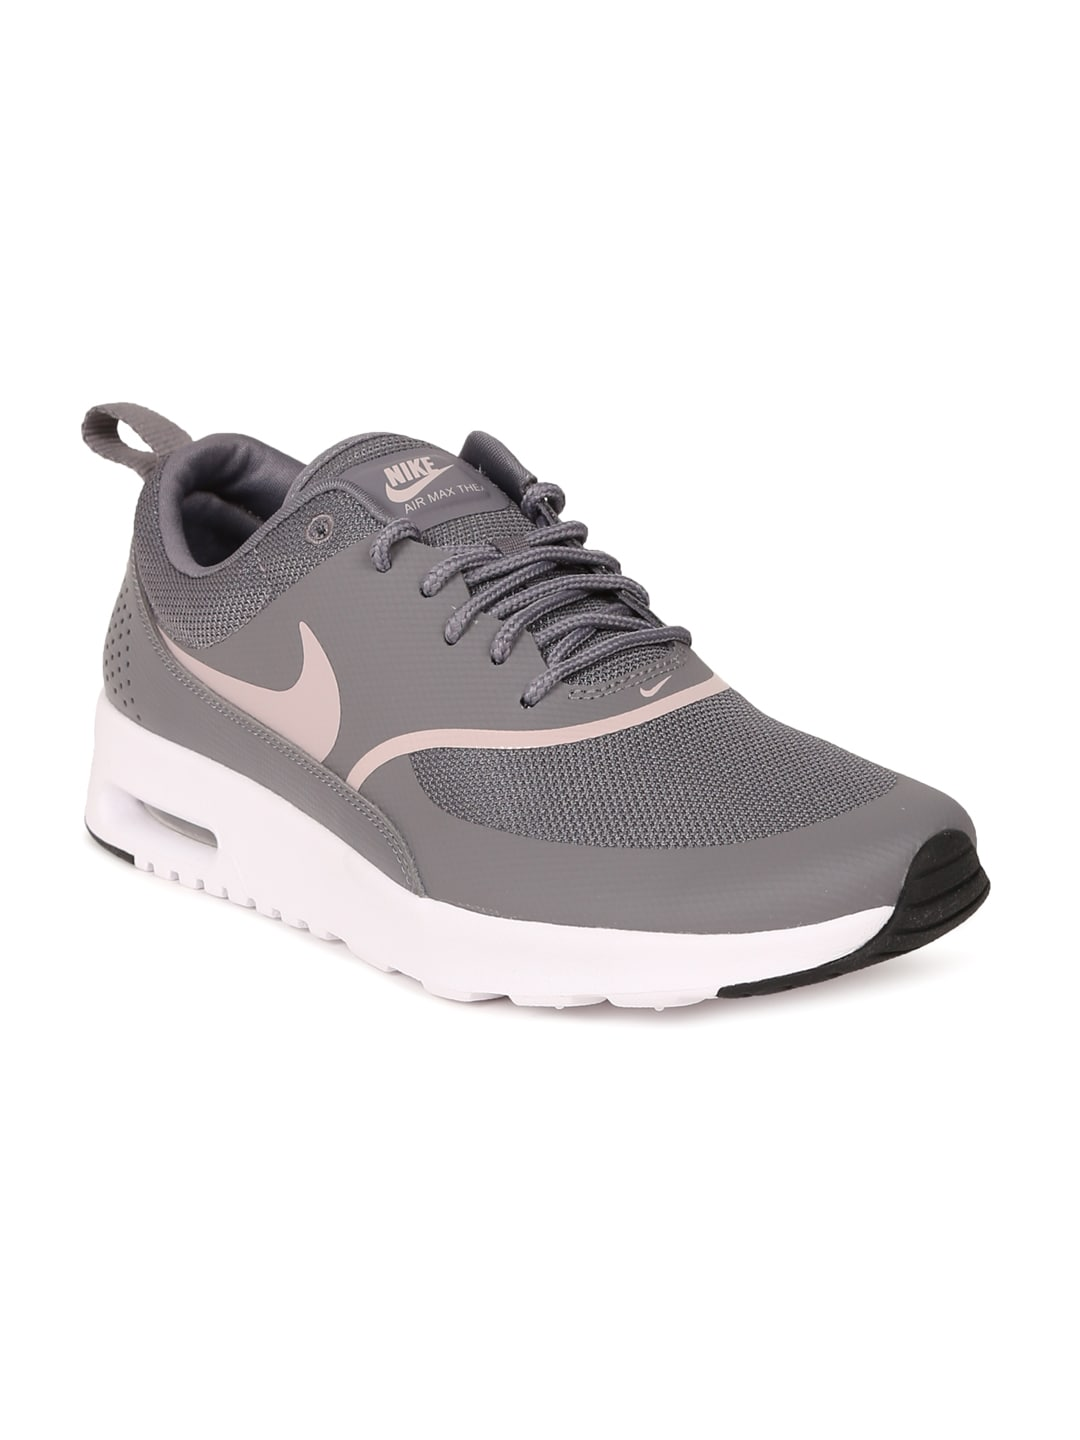 info for 9006d 11b7f Nike Apparels Casual Shoes - Buy Nike Apparels Casual Shoes online in India